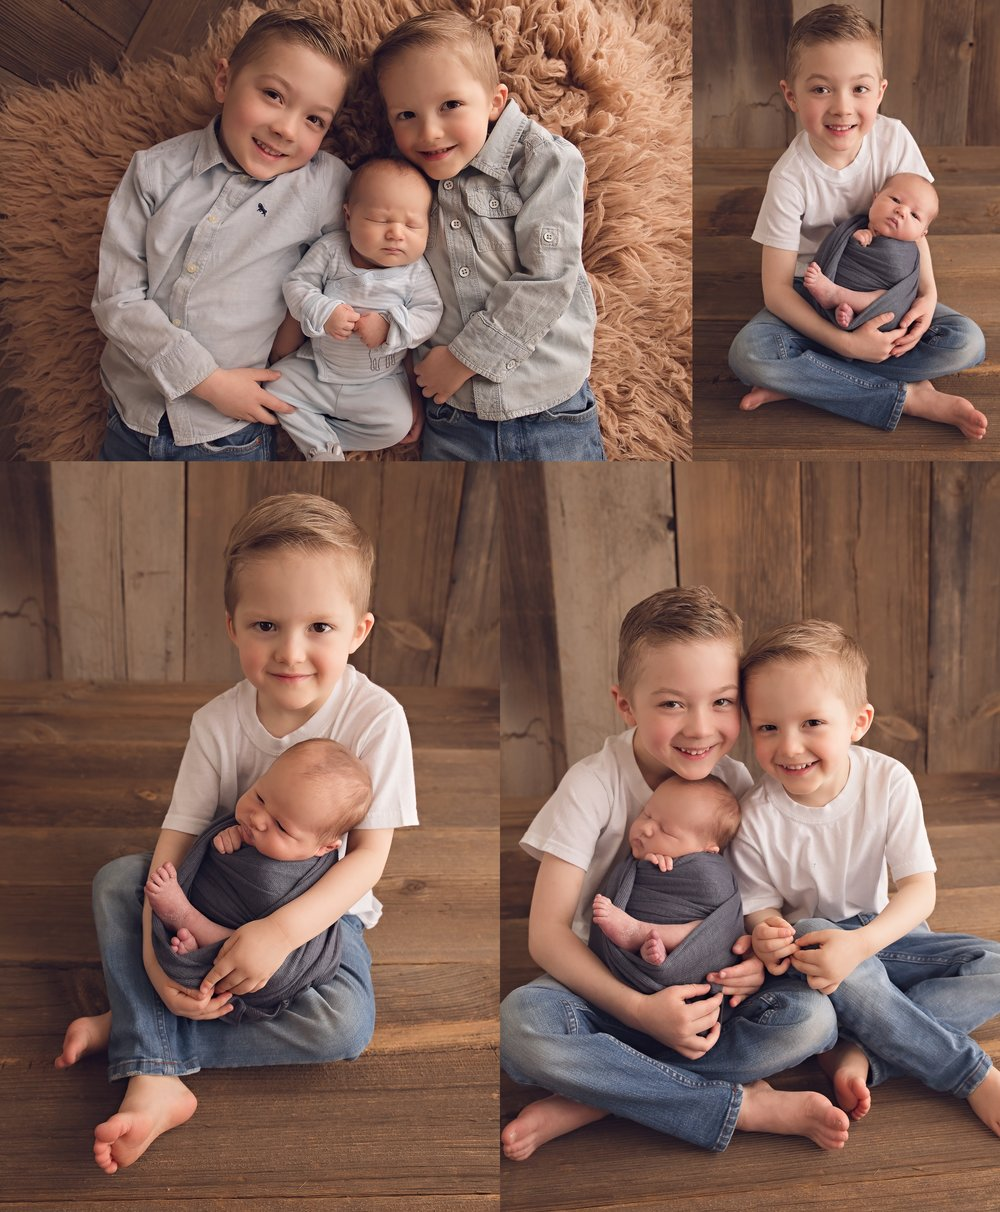 Newborn siblings becky monroe newborn photography photographer great falls mt birth baby children family couple